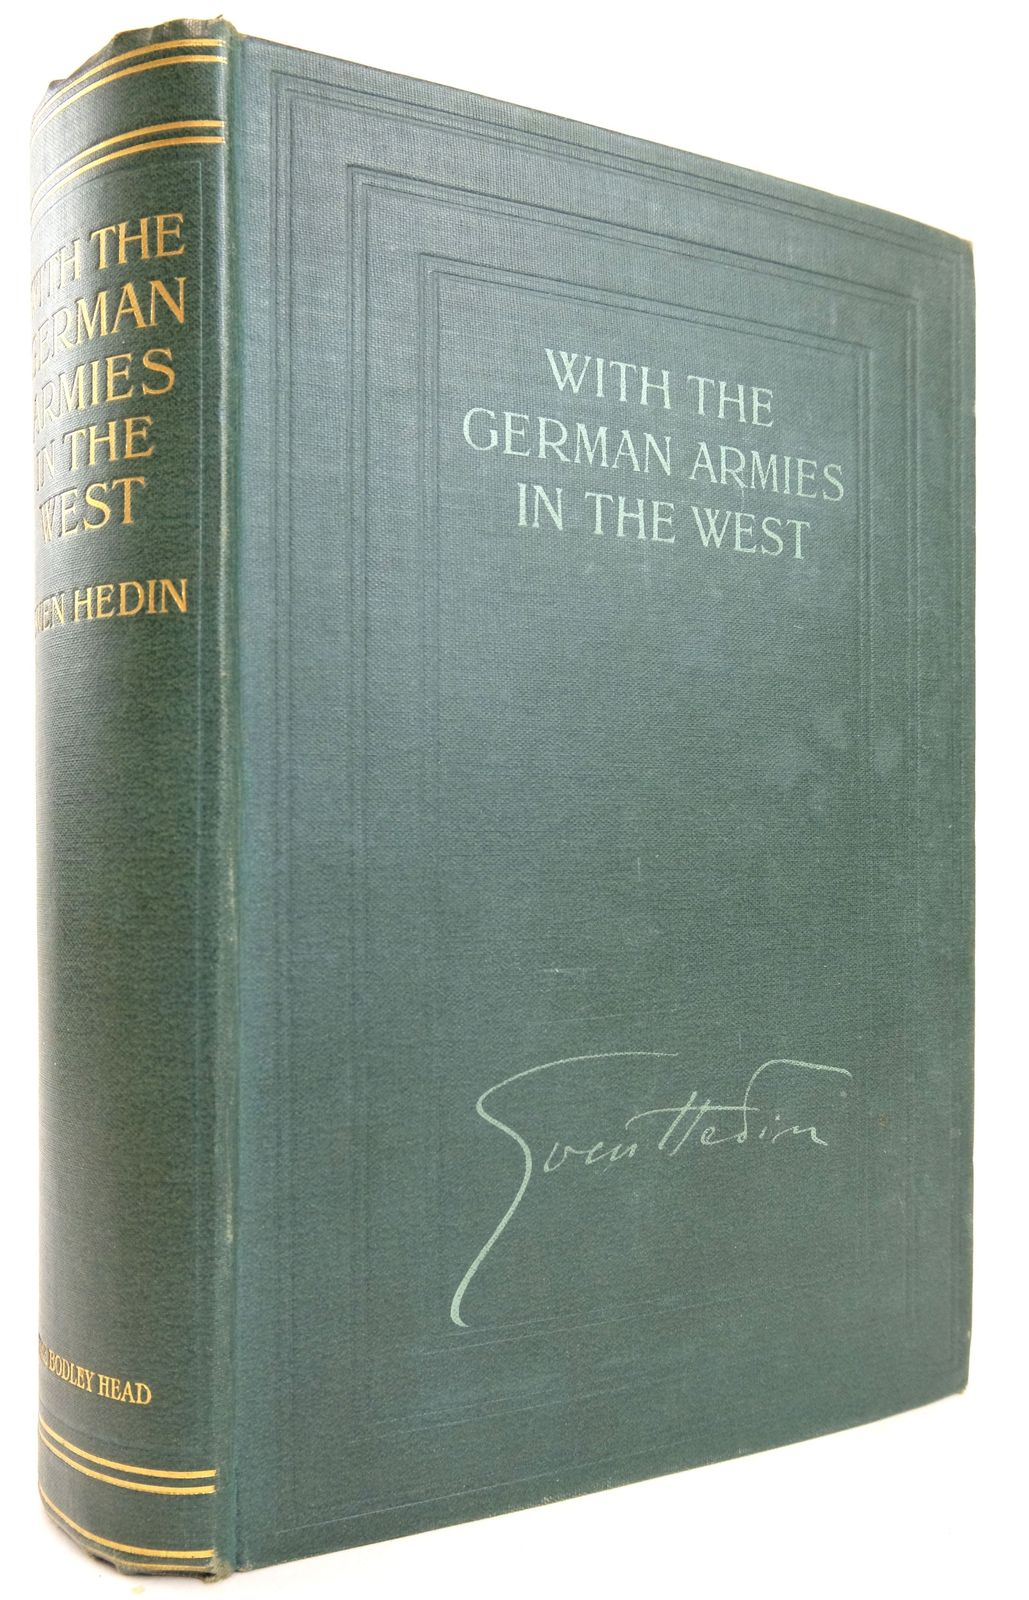 Photo of WITH THE GERMAN ARMIES IN THE WEST written by Hedin, Sven De Walterstorff, H.G. published by John Lane The Bodley Head (STOCK CODE: 1819233)  for sale by Stella & Rose's Books